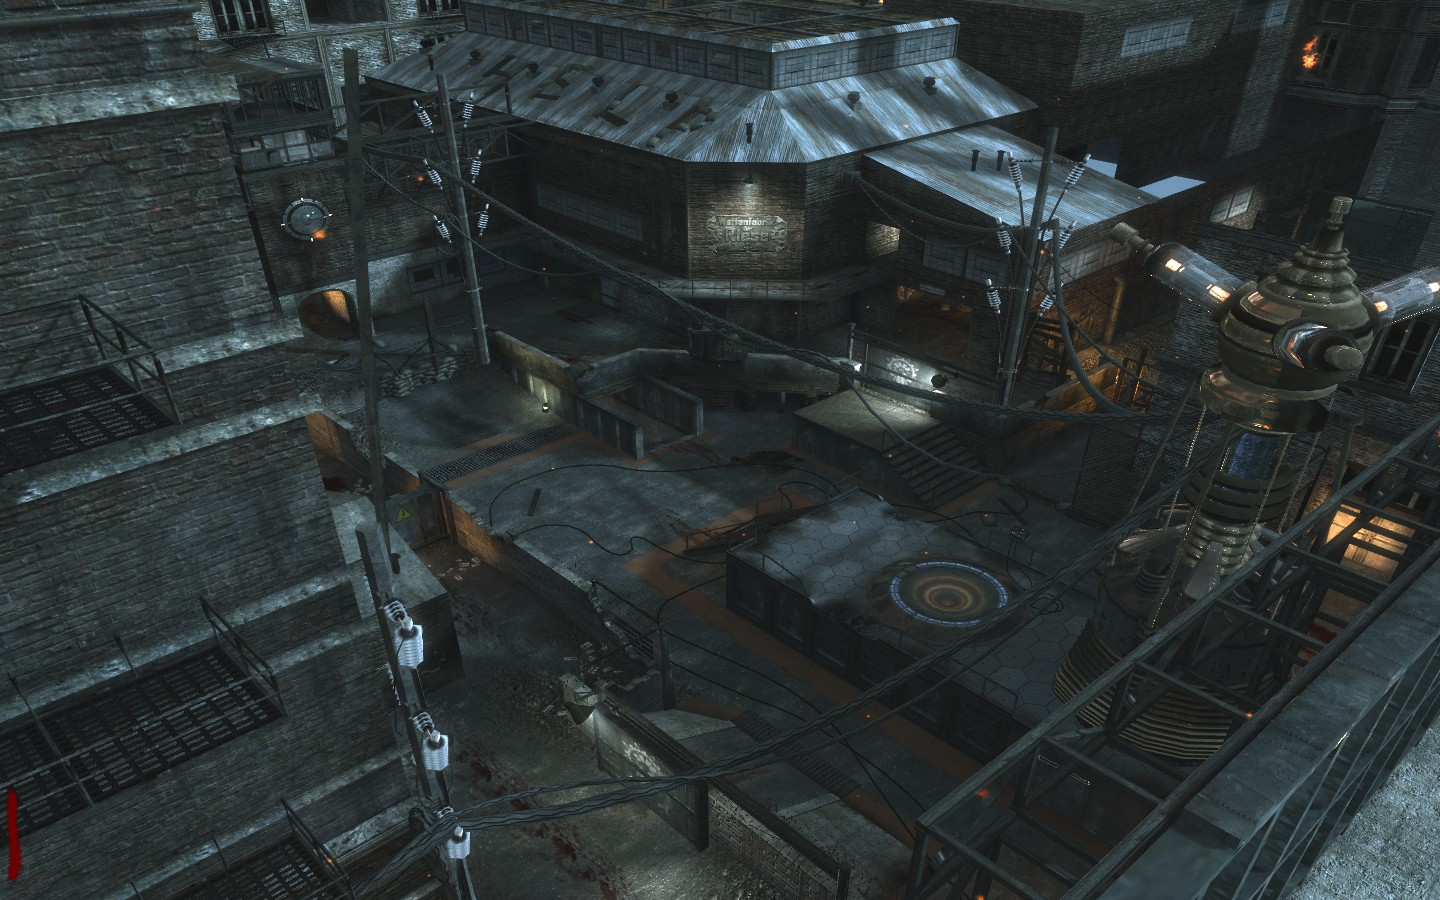 Der Riese | Call of Duty Wiki | FANDOM powered by Wikia on